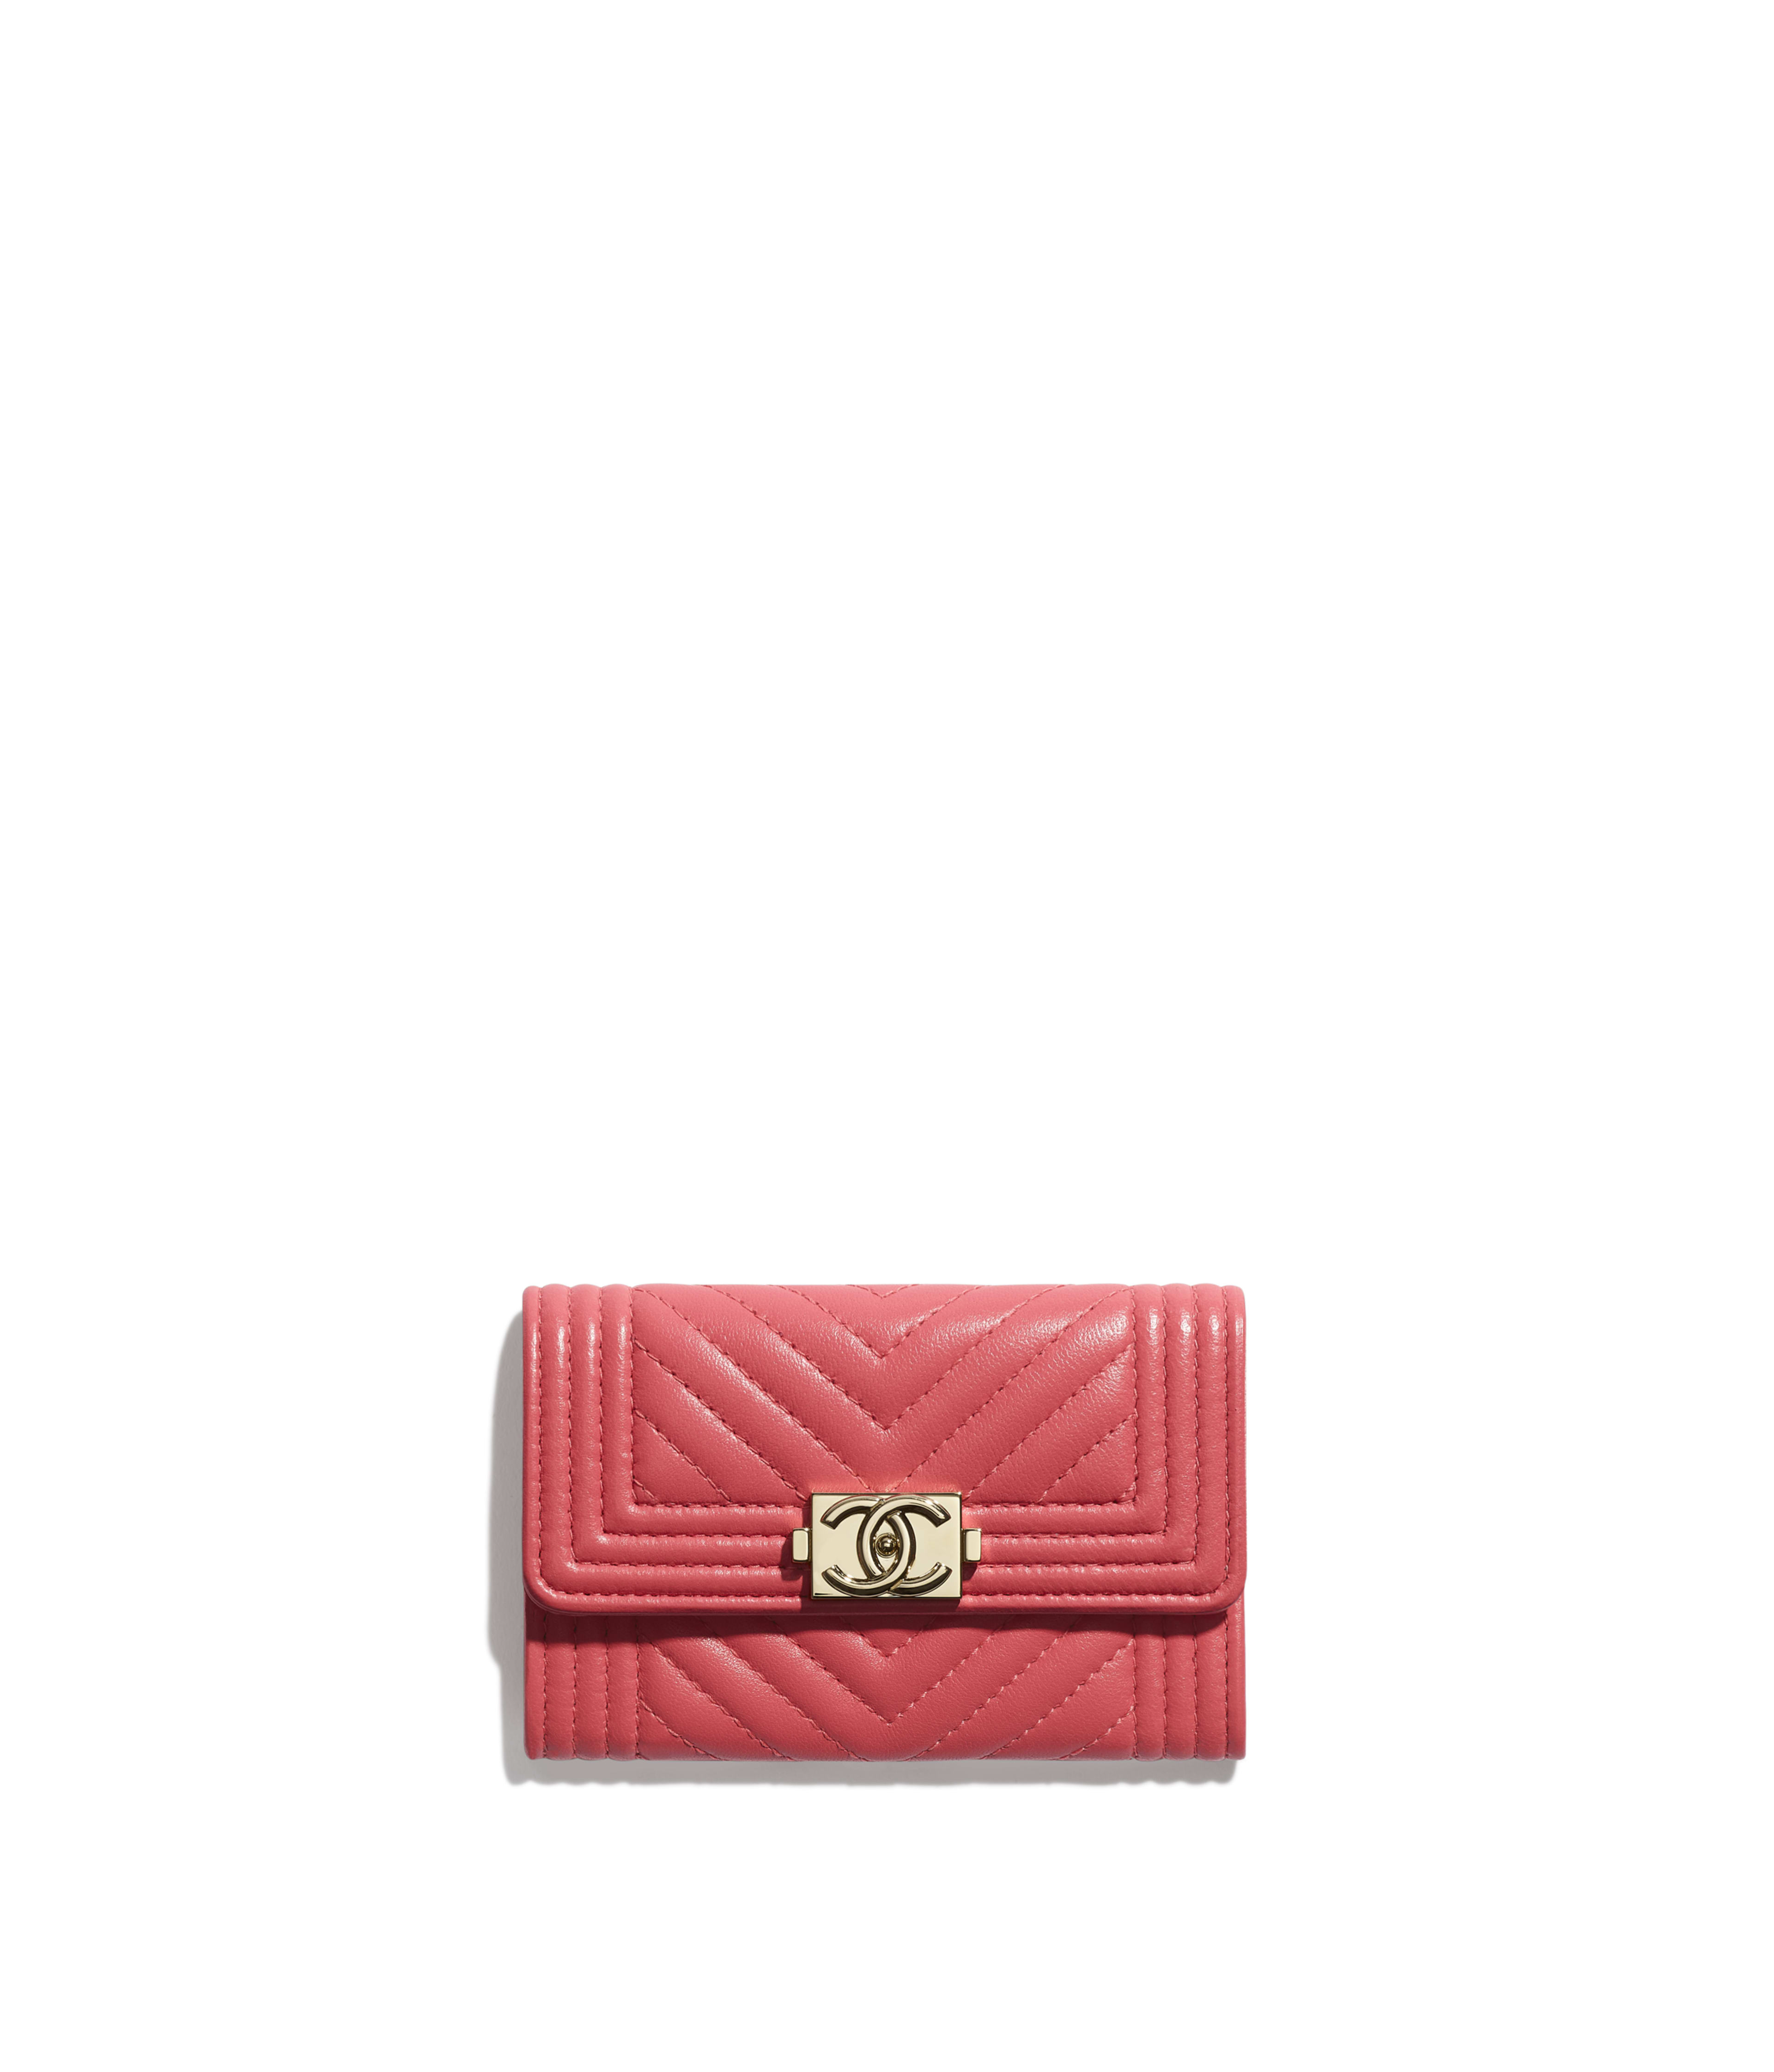 5b8559ac66ec84 BOY CHANEL Flap Card Holder Lambskin & Gold-Tone Metal, Pink Ref.  A80603Y25539N0412